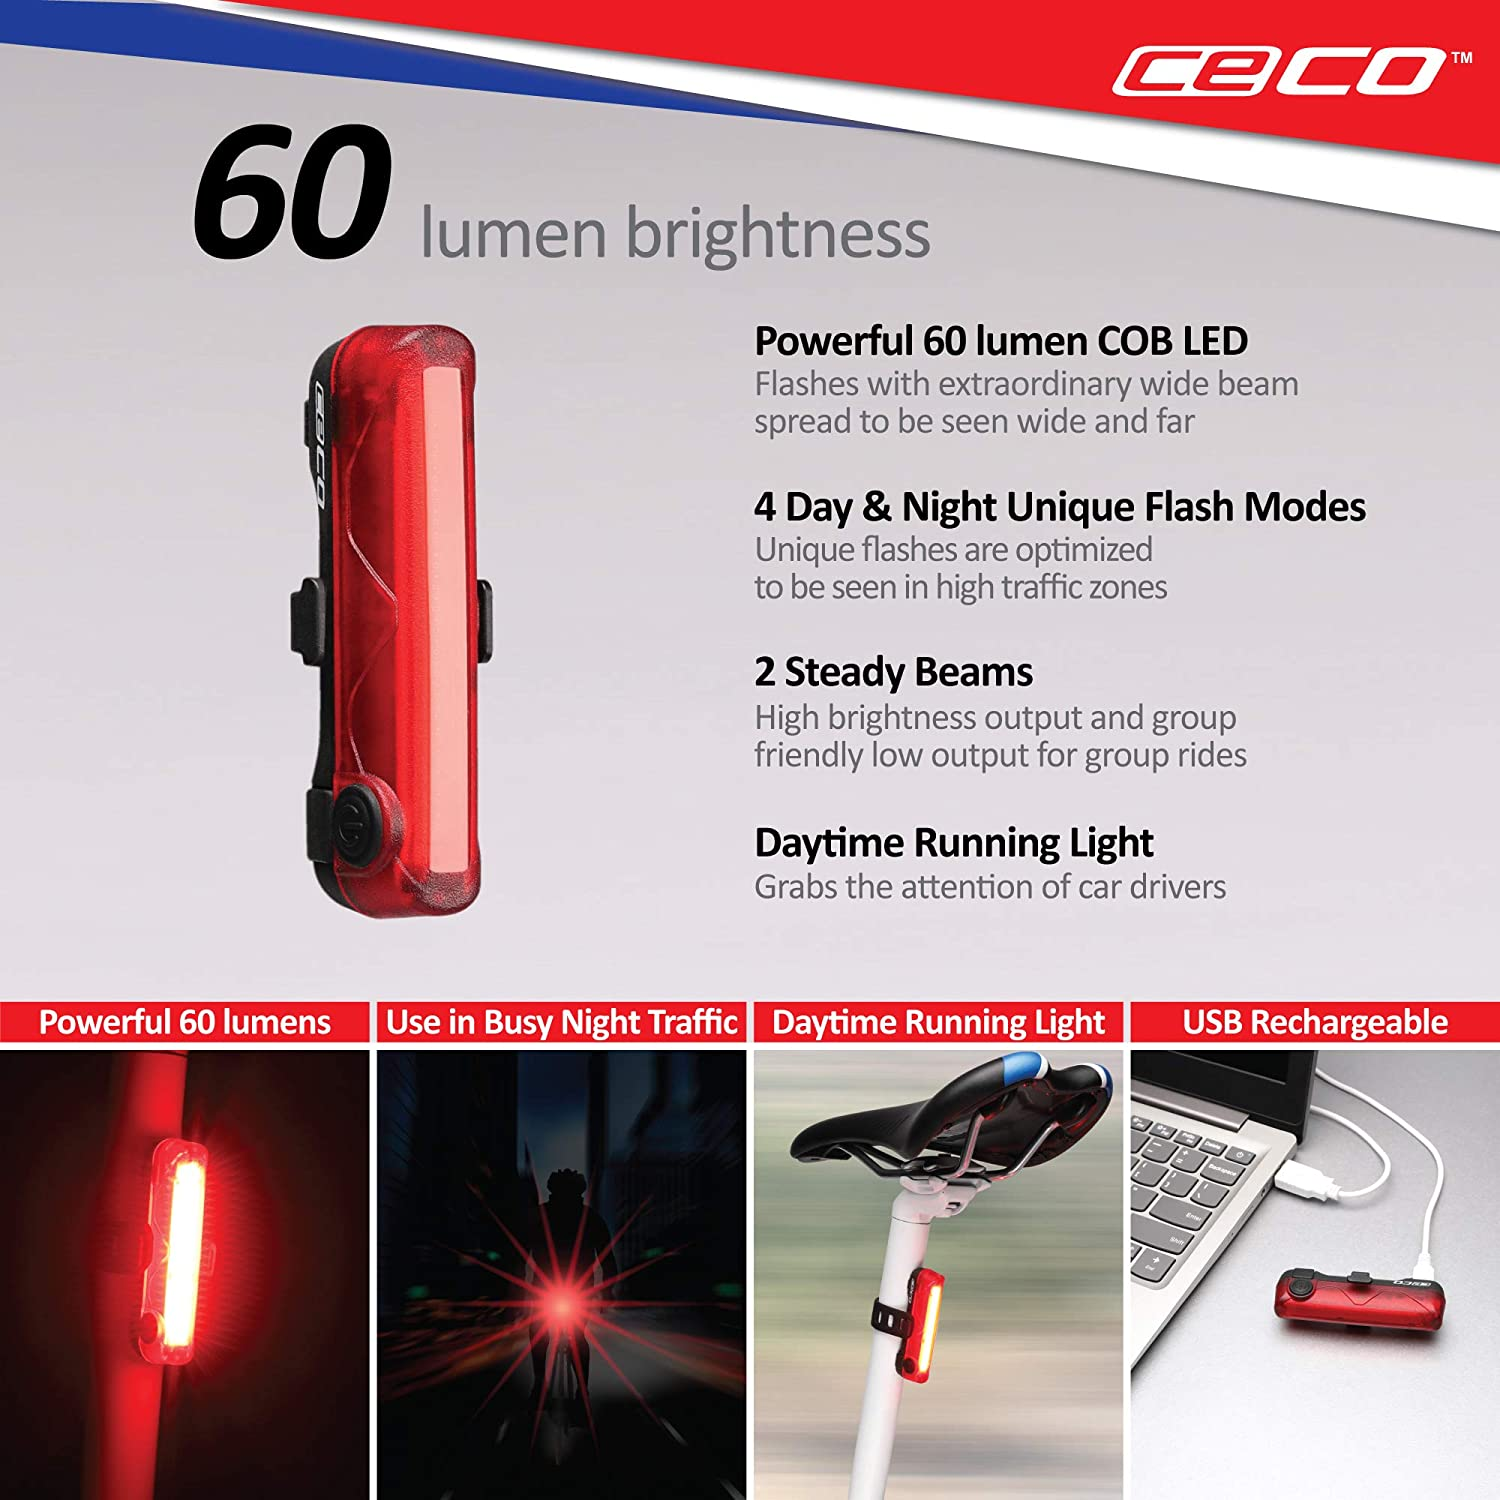 CECO-USA 60 Lumen USB Rechargeable Bike Tail Light – Super Wide Bright Model TC60 Bicycle Rear Light – IP67 Waterproof, FL-1 Impact Resistant – COB LED Red Safety Light – Pro Grade Bike Tail Light